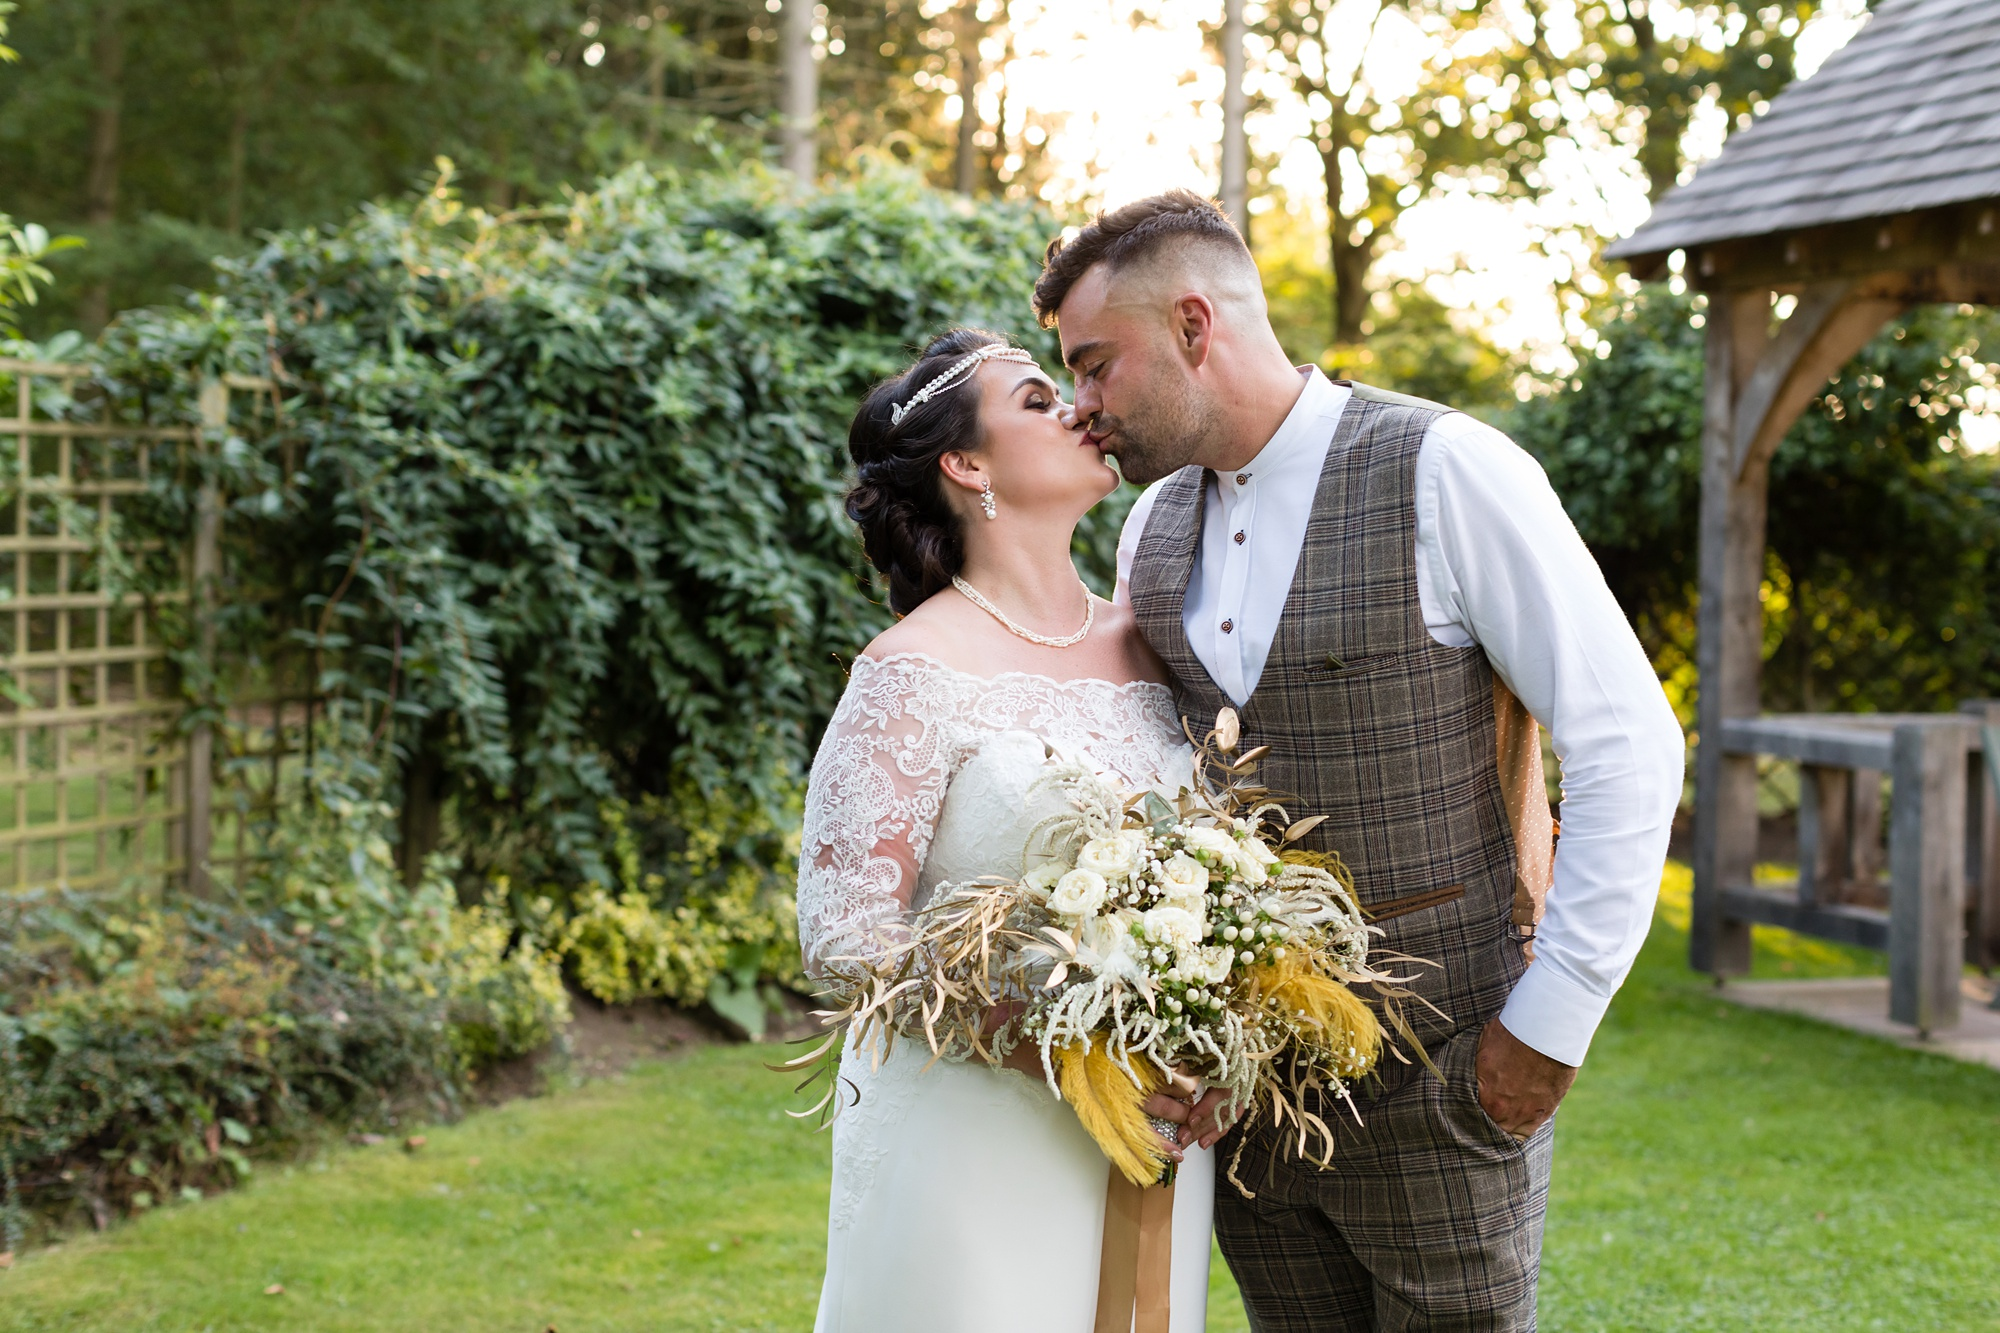 Bride & Groom kissing in the golden hour at Sandburn Hall.